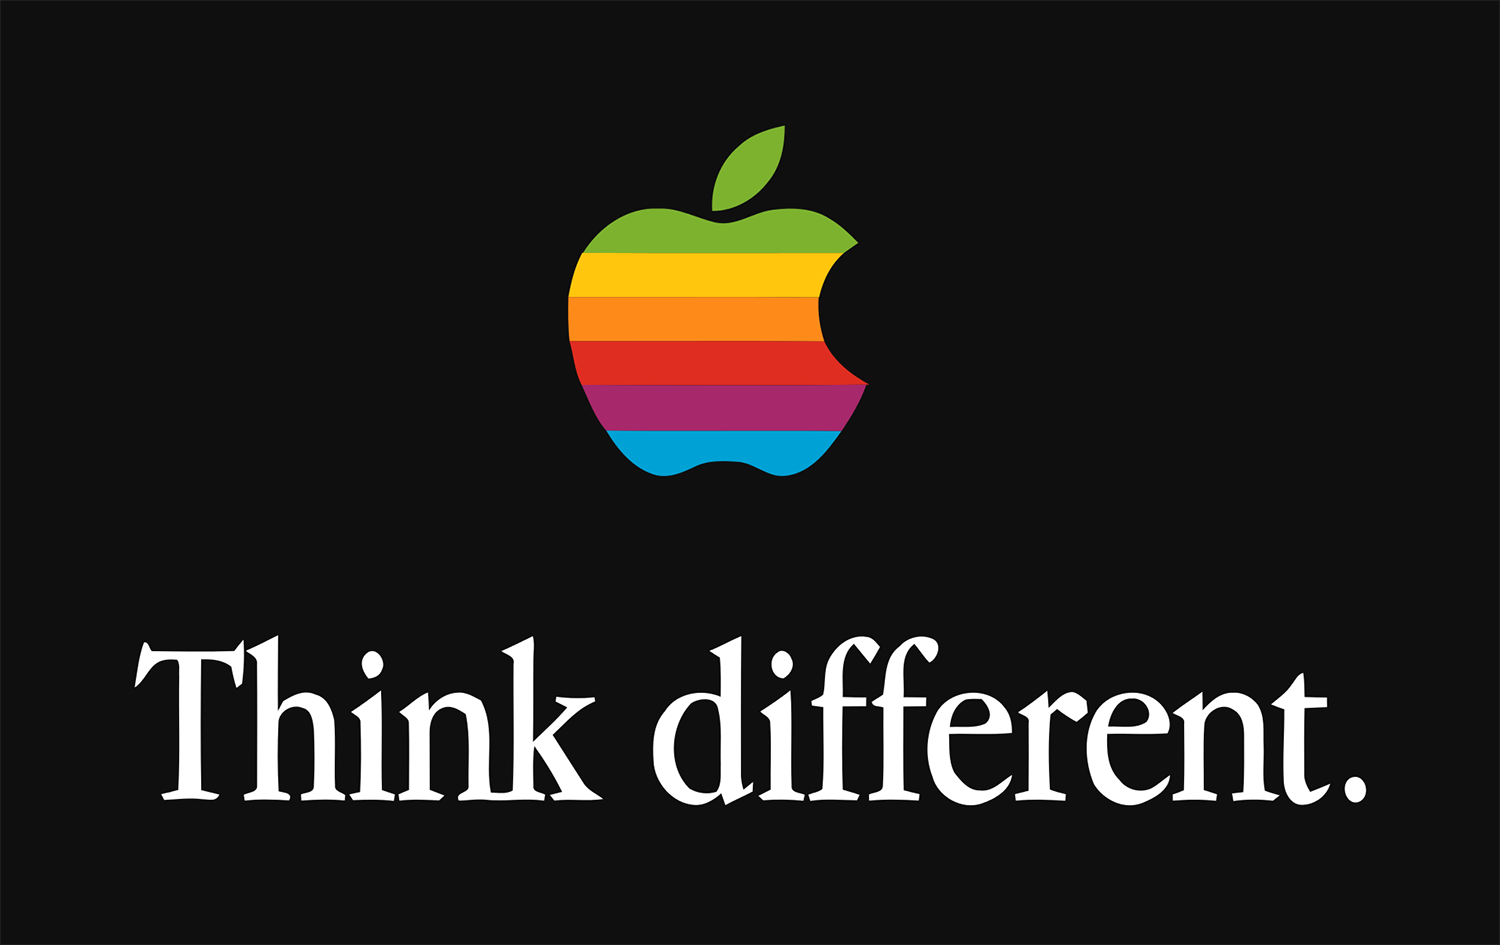 Apple's Think Different campaign featuring Garamond as the typeface